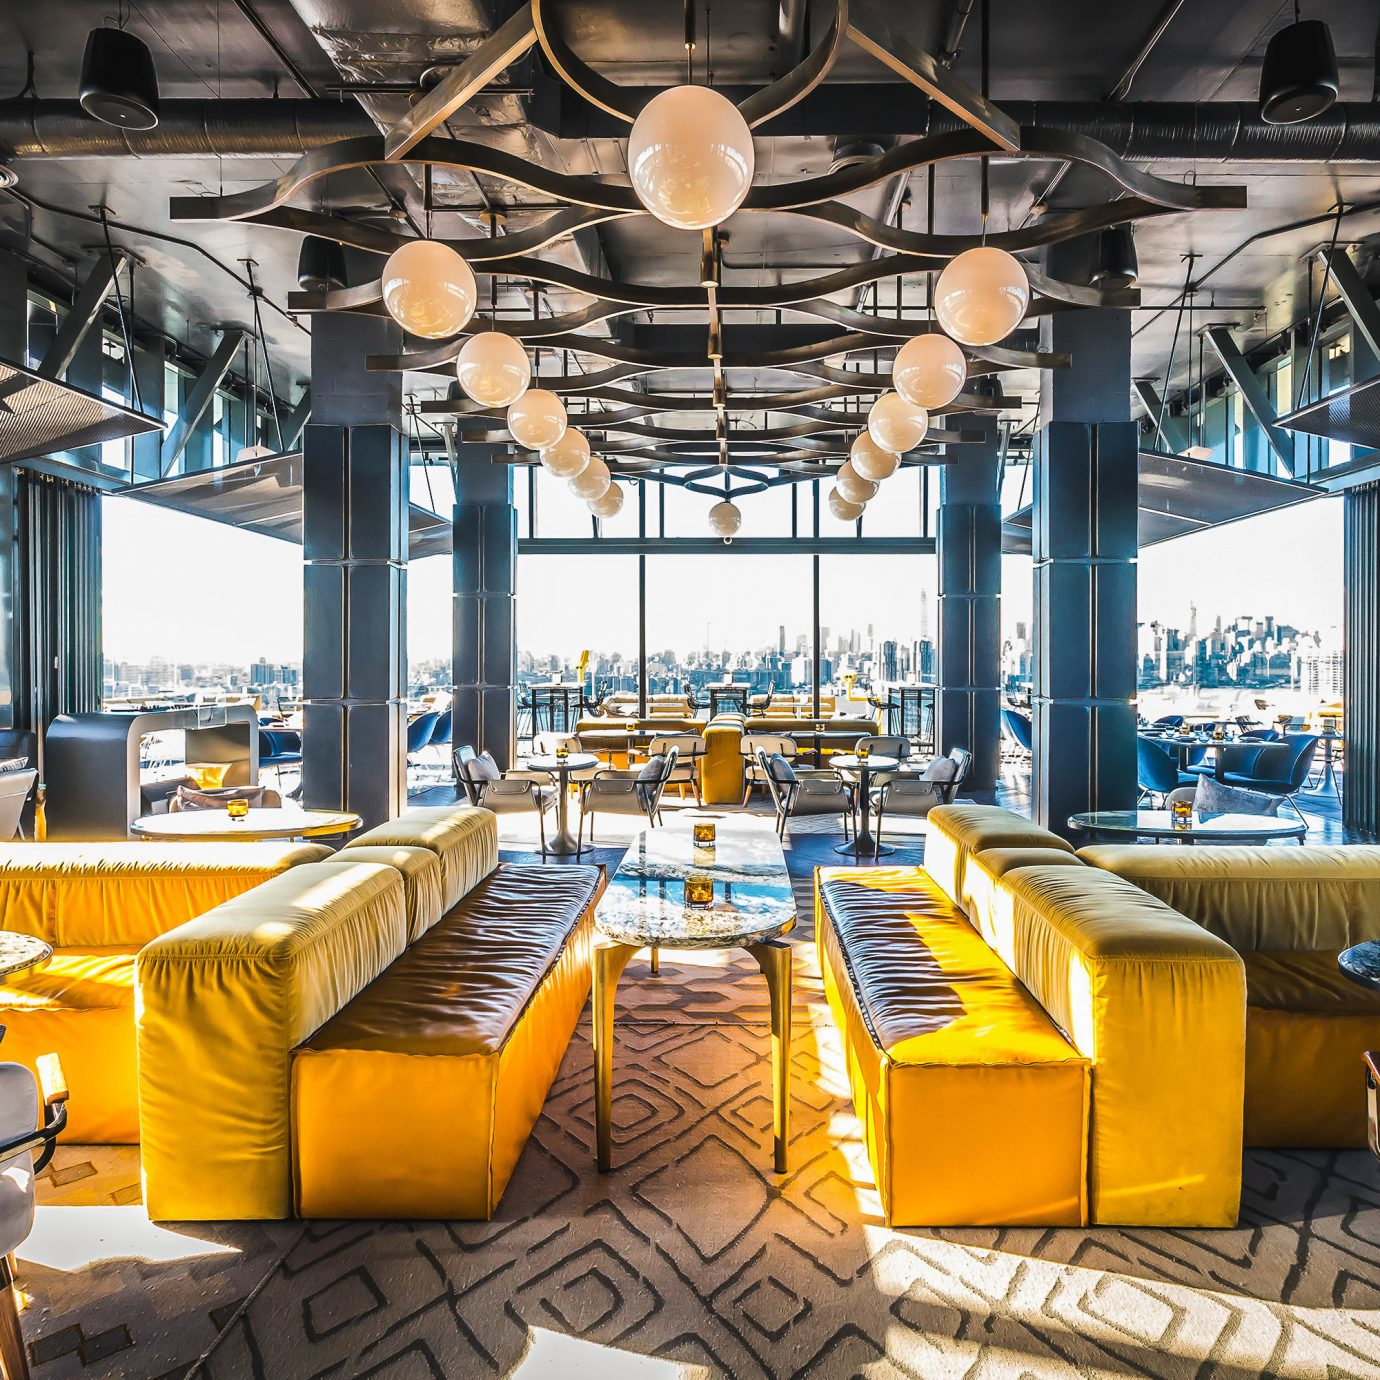 Boutique Hotels Food + Drink Hotels building indoor table yellow ceiling restaurant interior design industry several